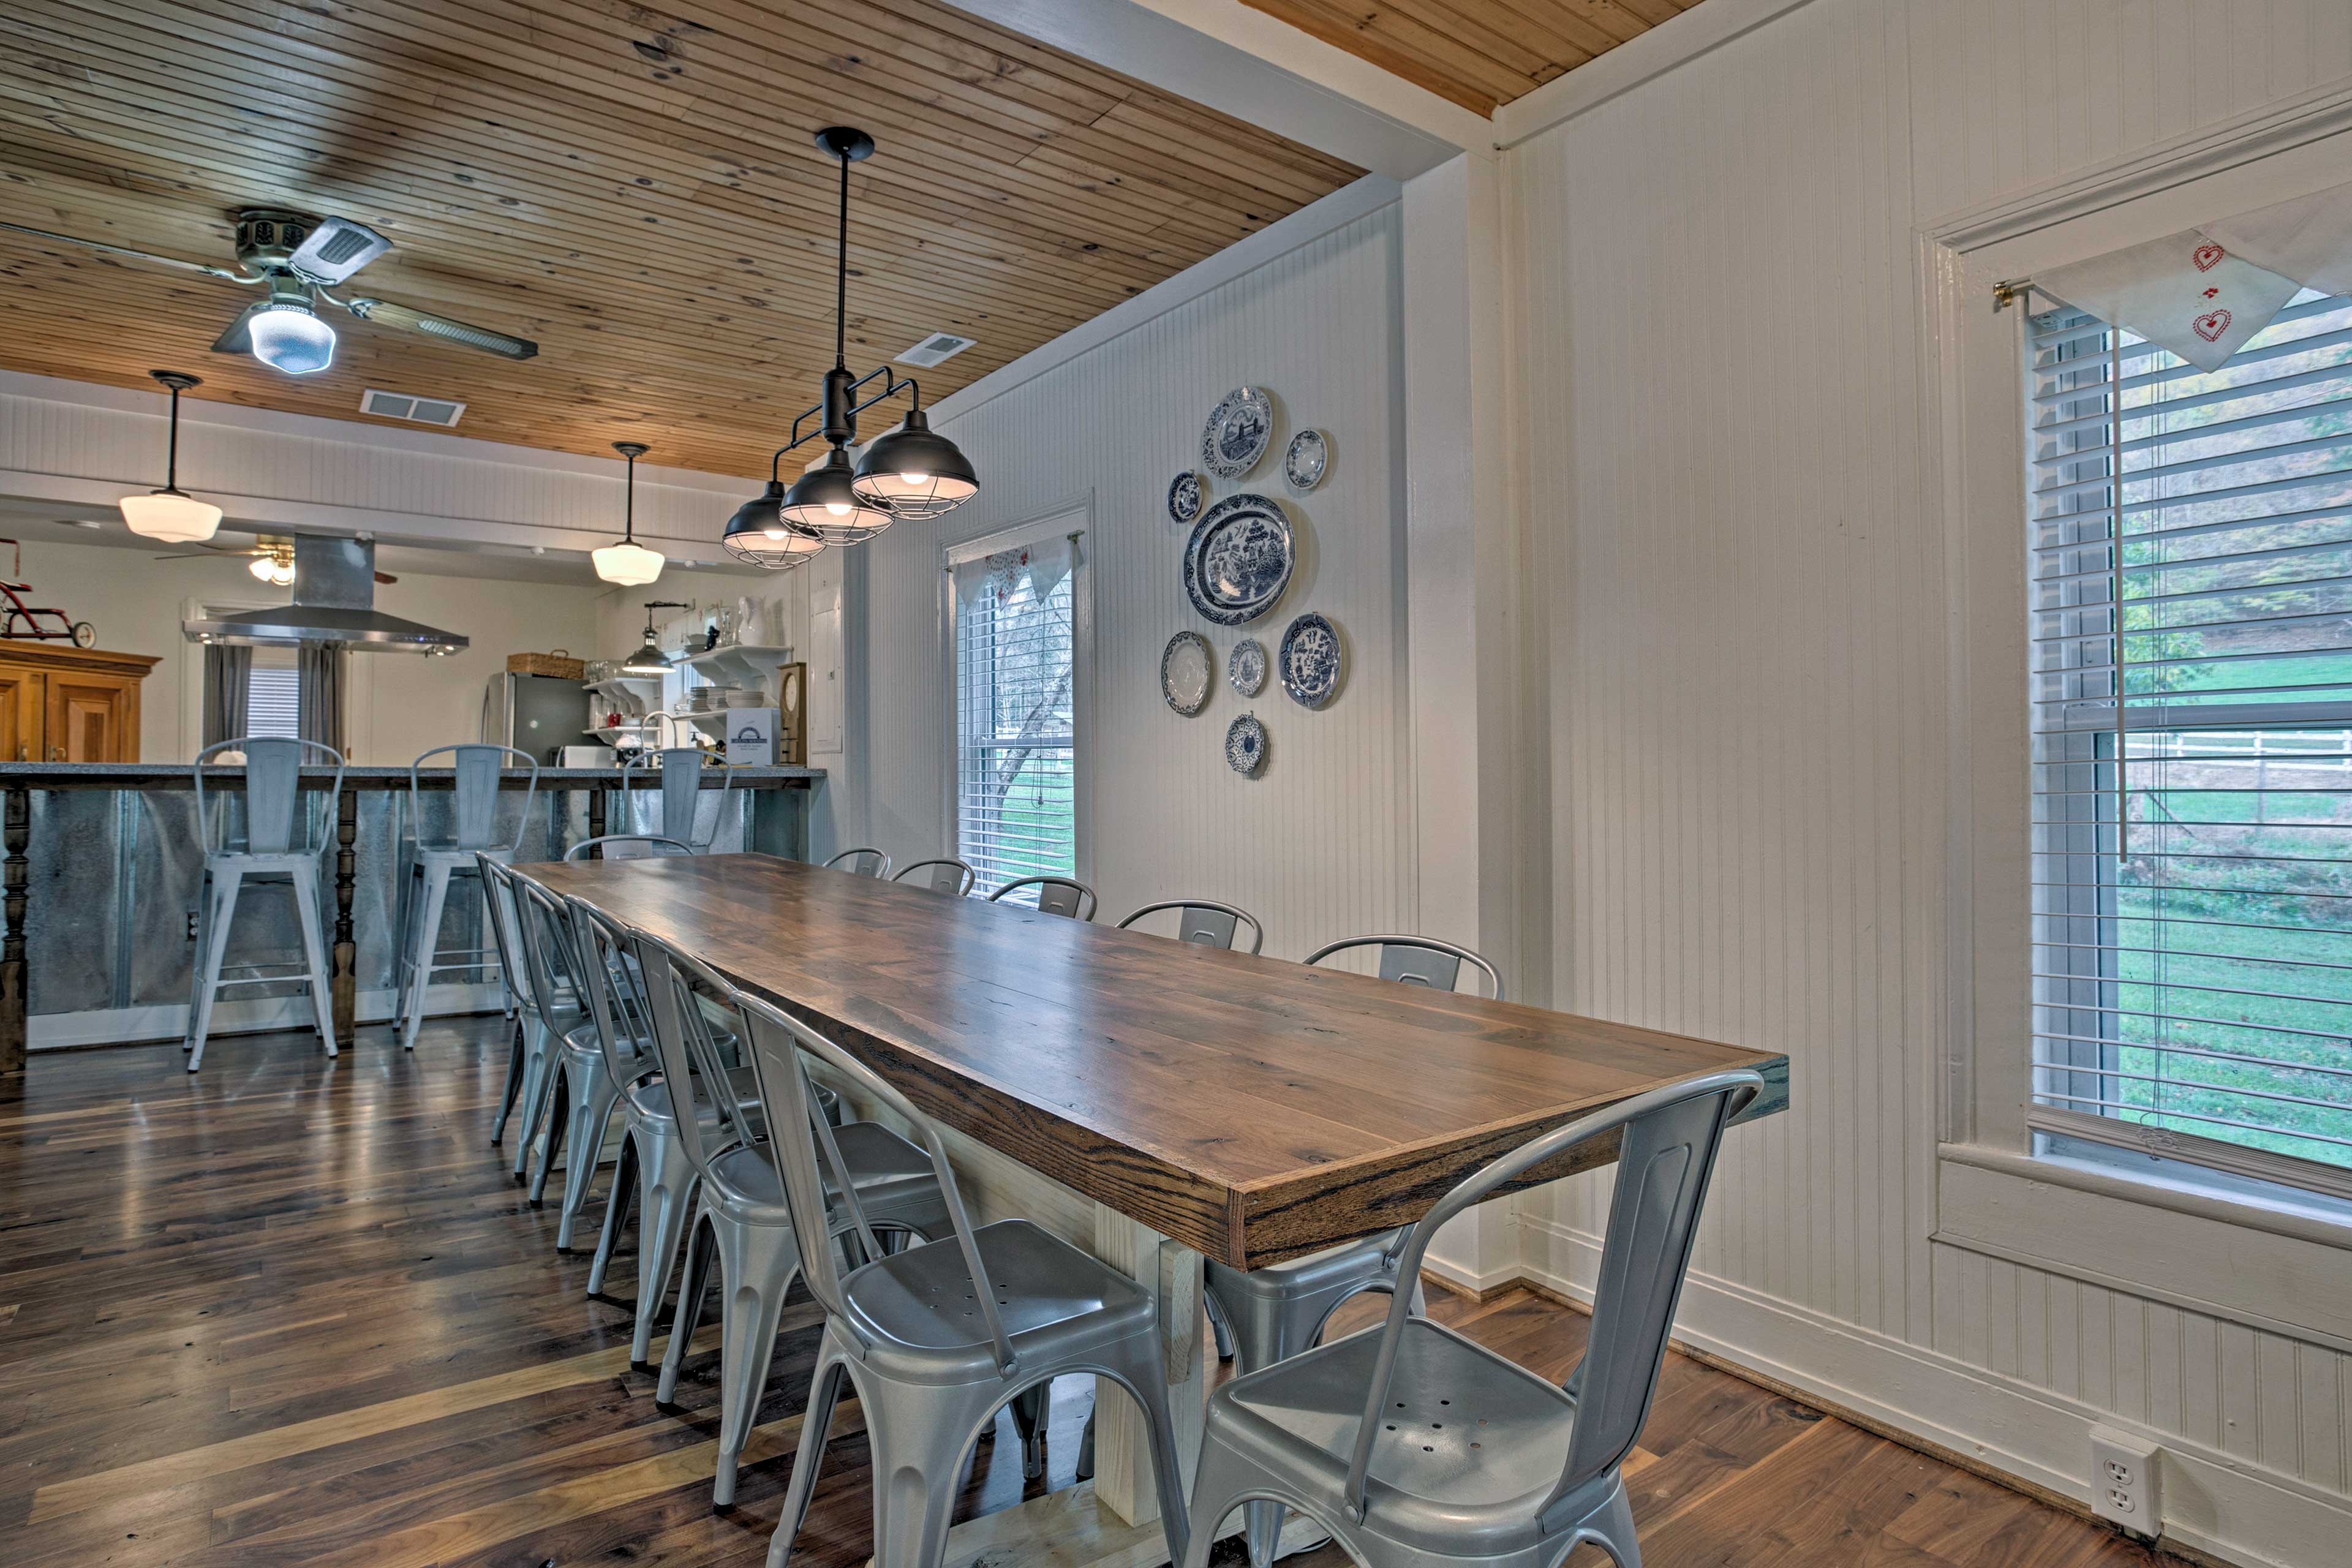 Everyone can enjoy a homemade meal at this 12-person formal dining table.